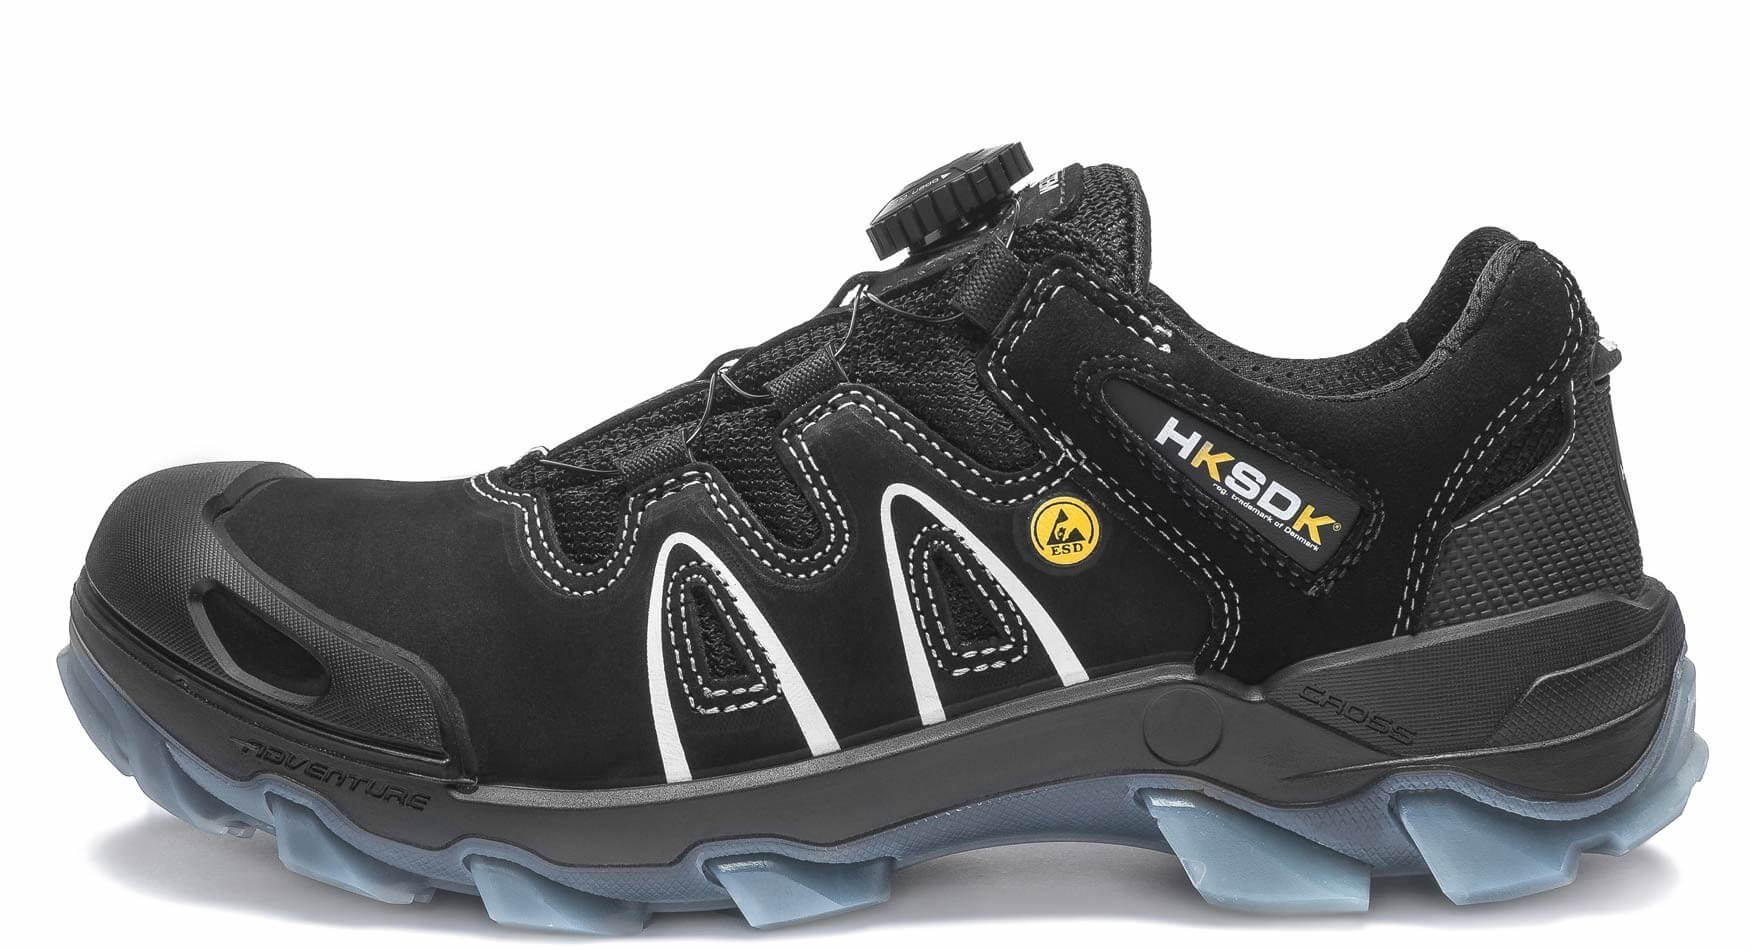 HKSDK Z5 safety shoe